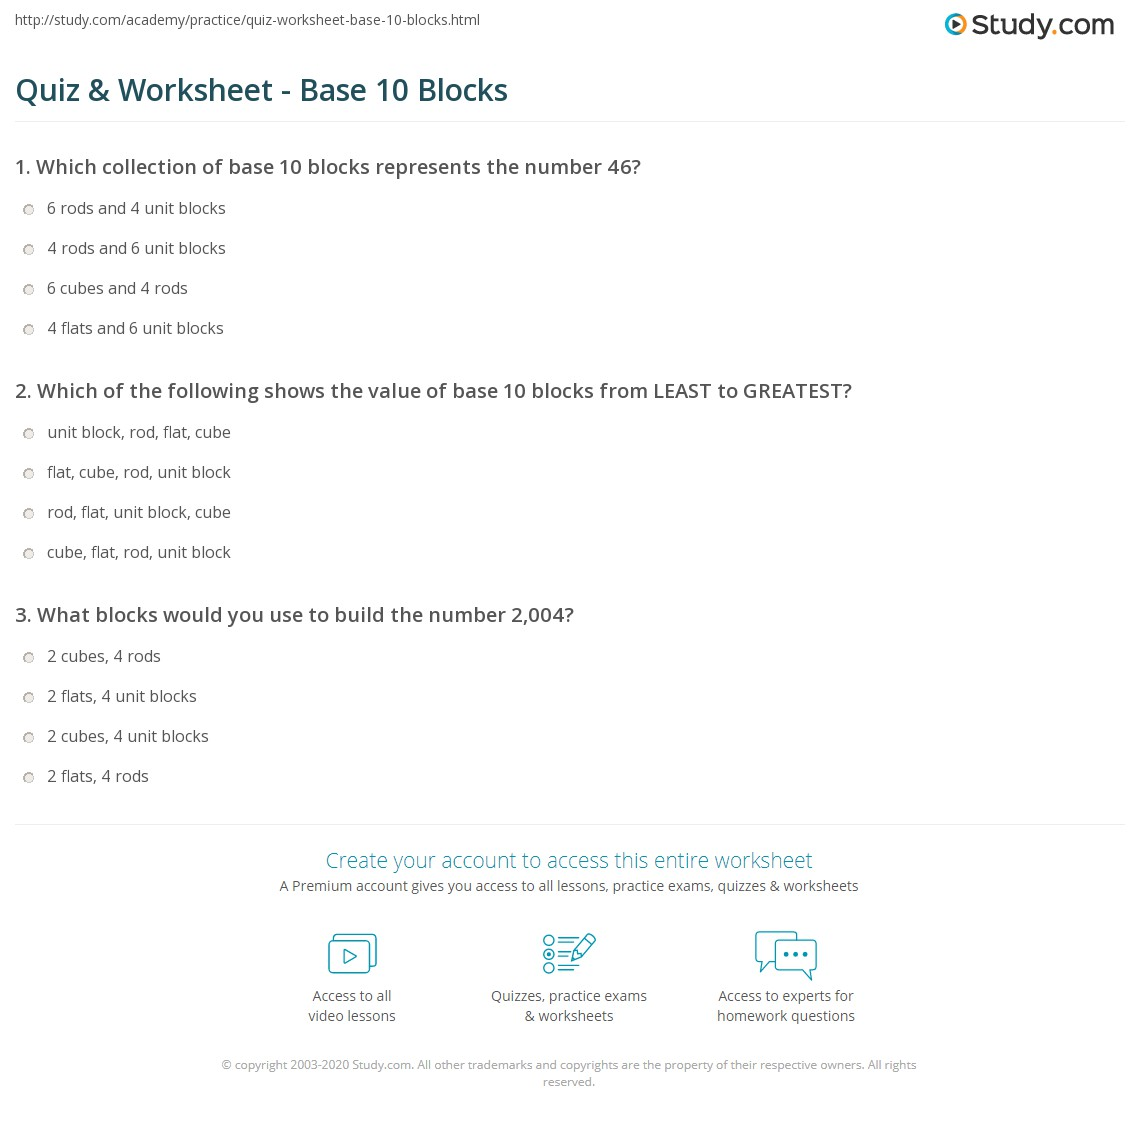 Quiz & Worksheet Base 10 Blocks